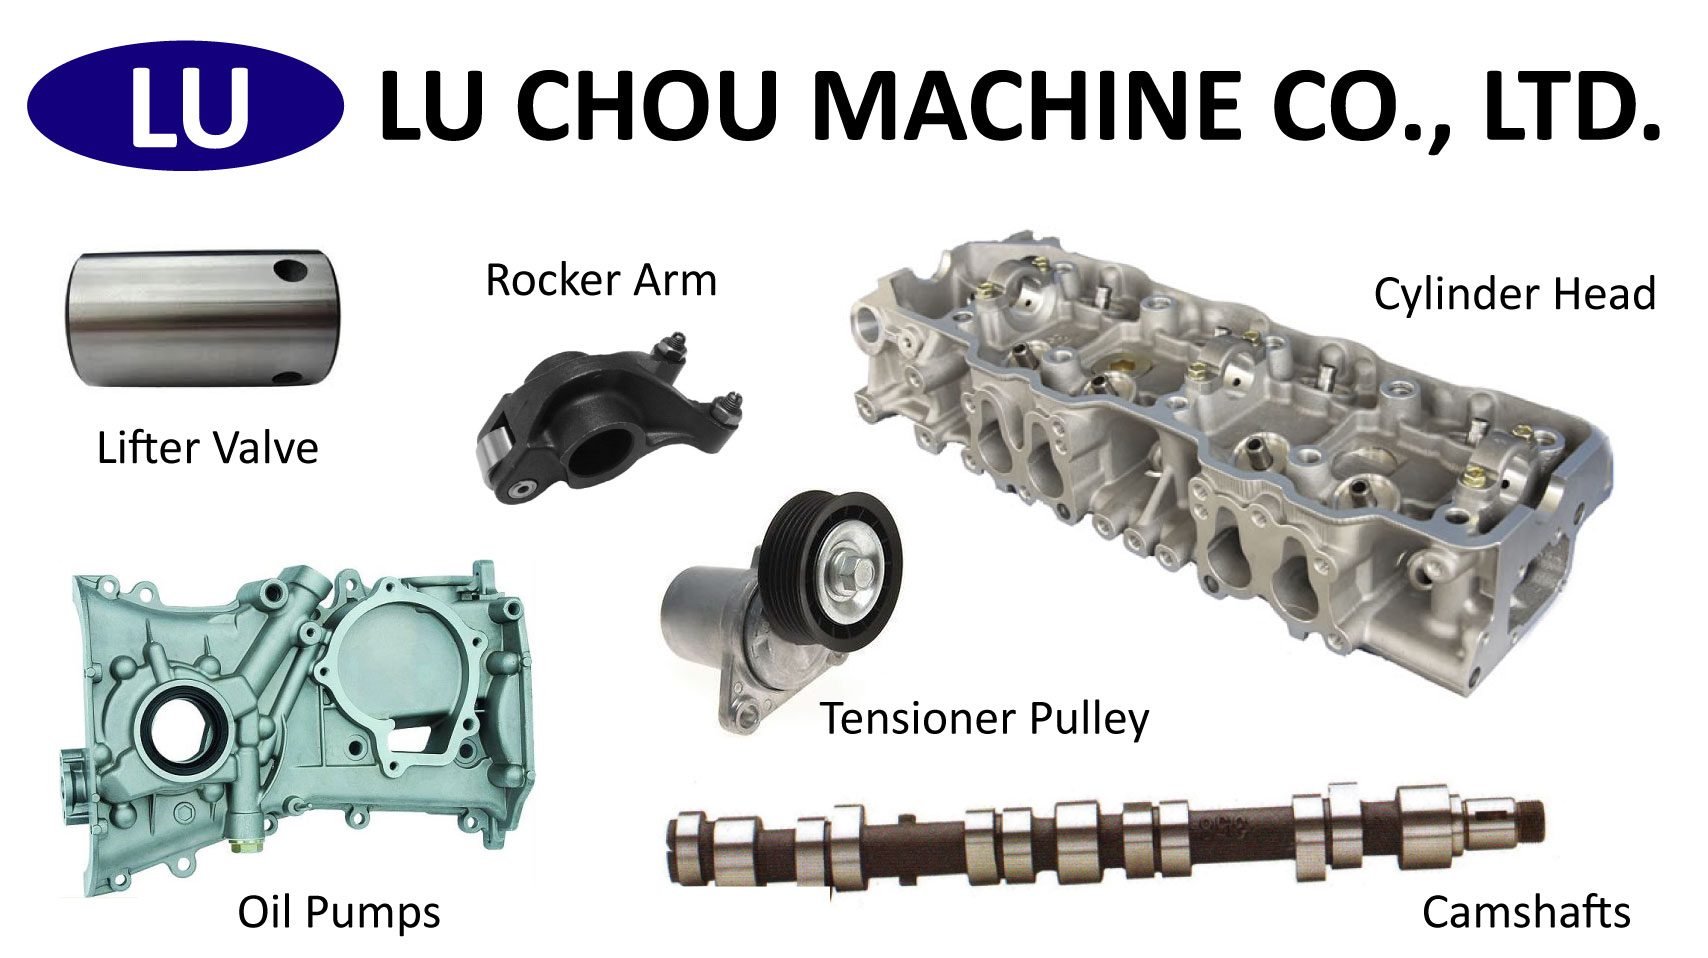 Lifter Valve, Rocker Arm, Cylinder Head, Oil Pumps, Tensioner Pulley, Camshafts for Engine Parts made by LU CHOU MACHINE CO., LTD. 蘆洲機械有限公司 – MatchSupplier.com